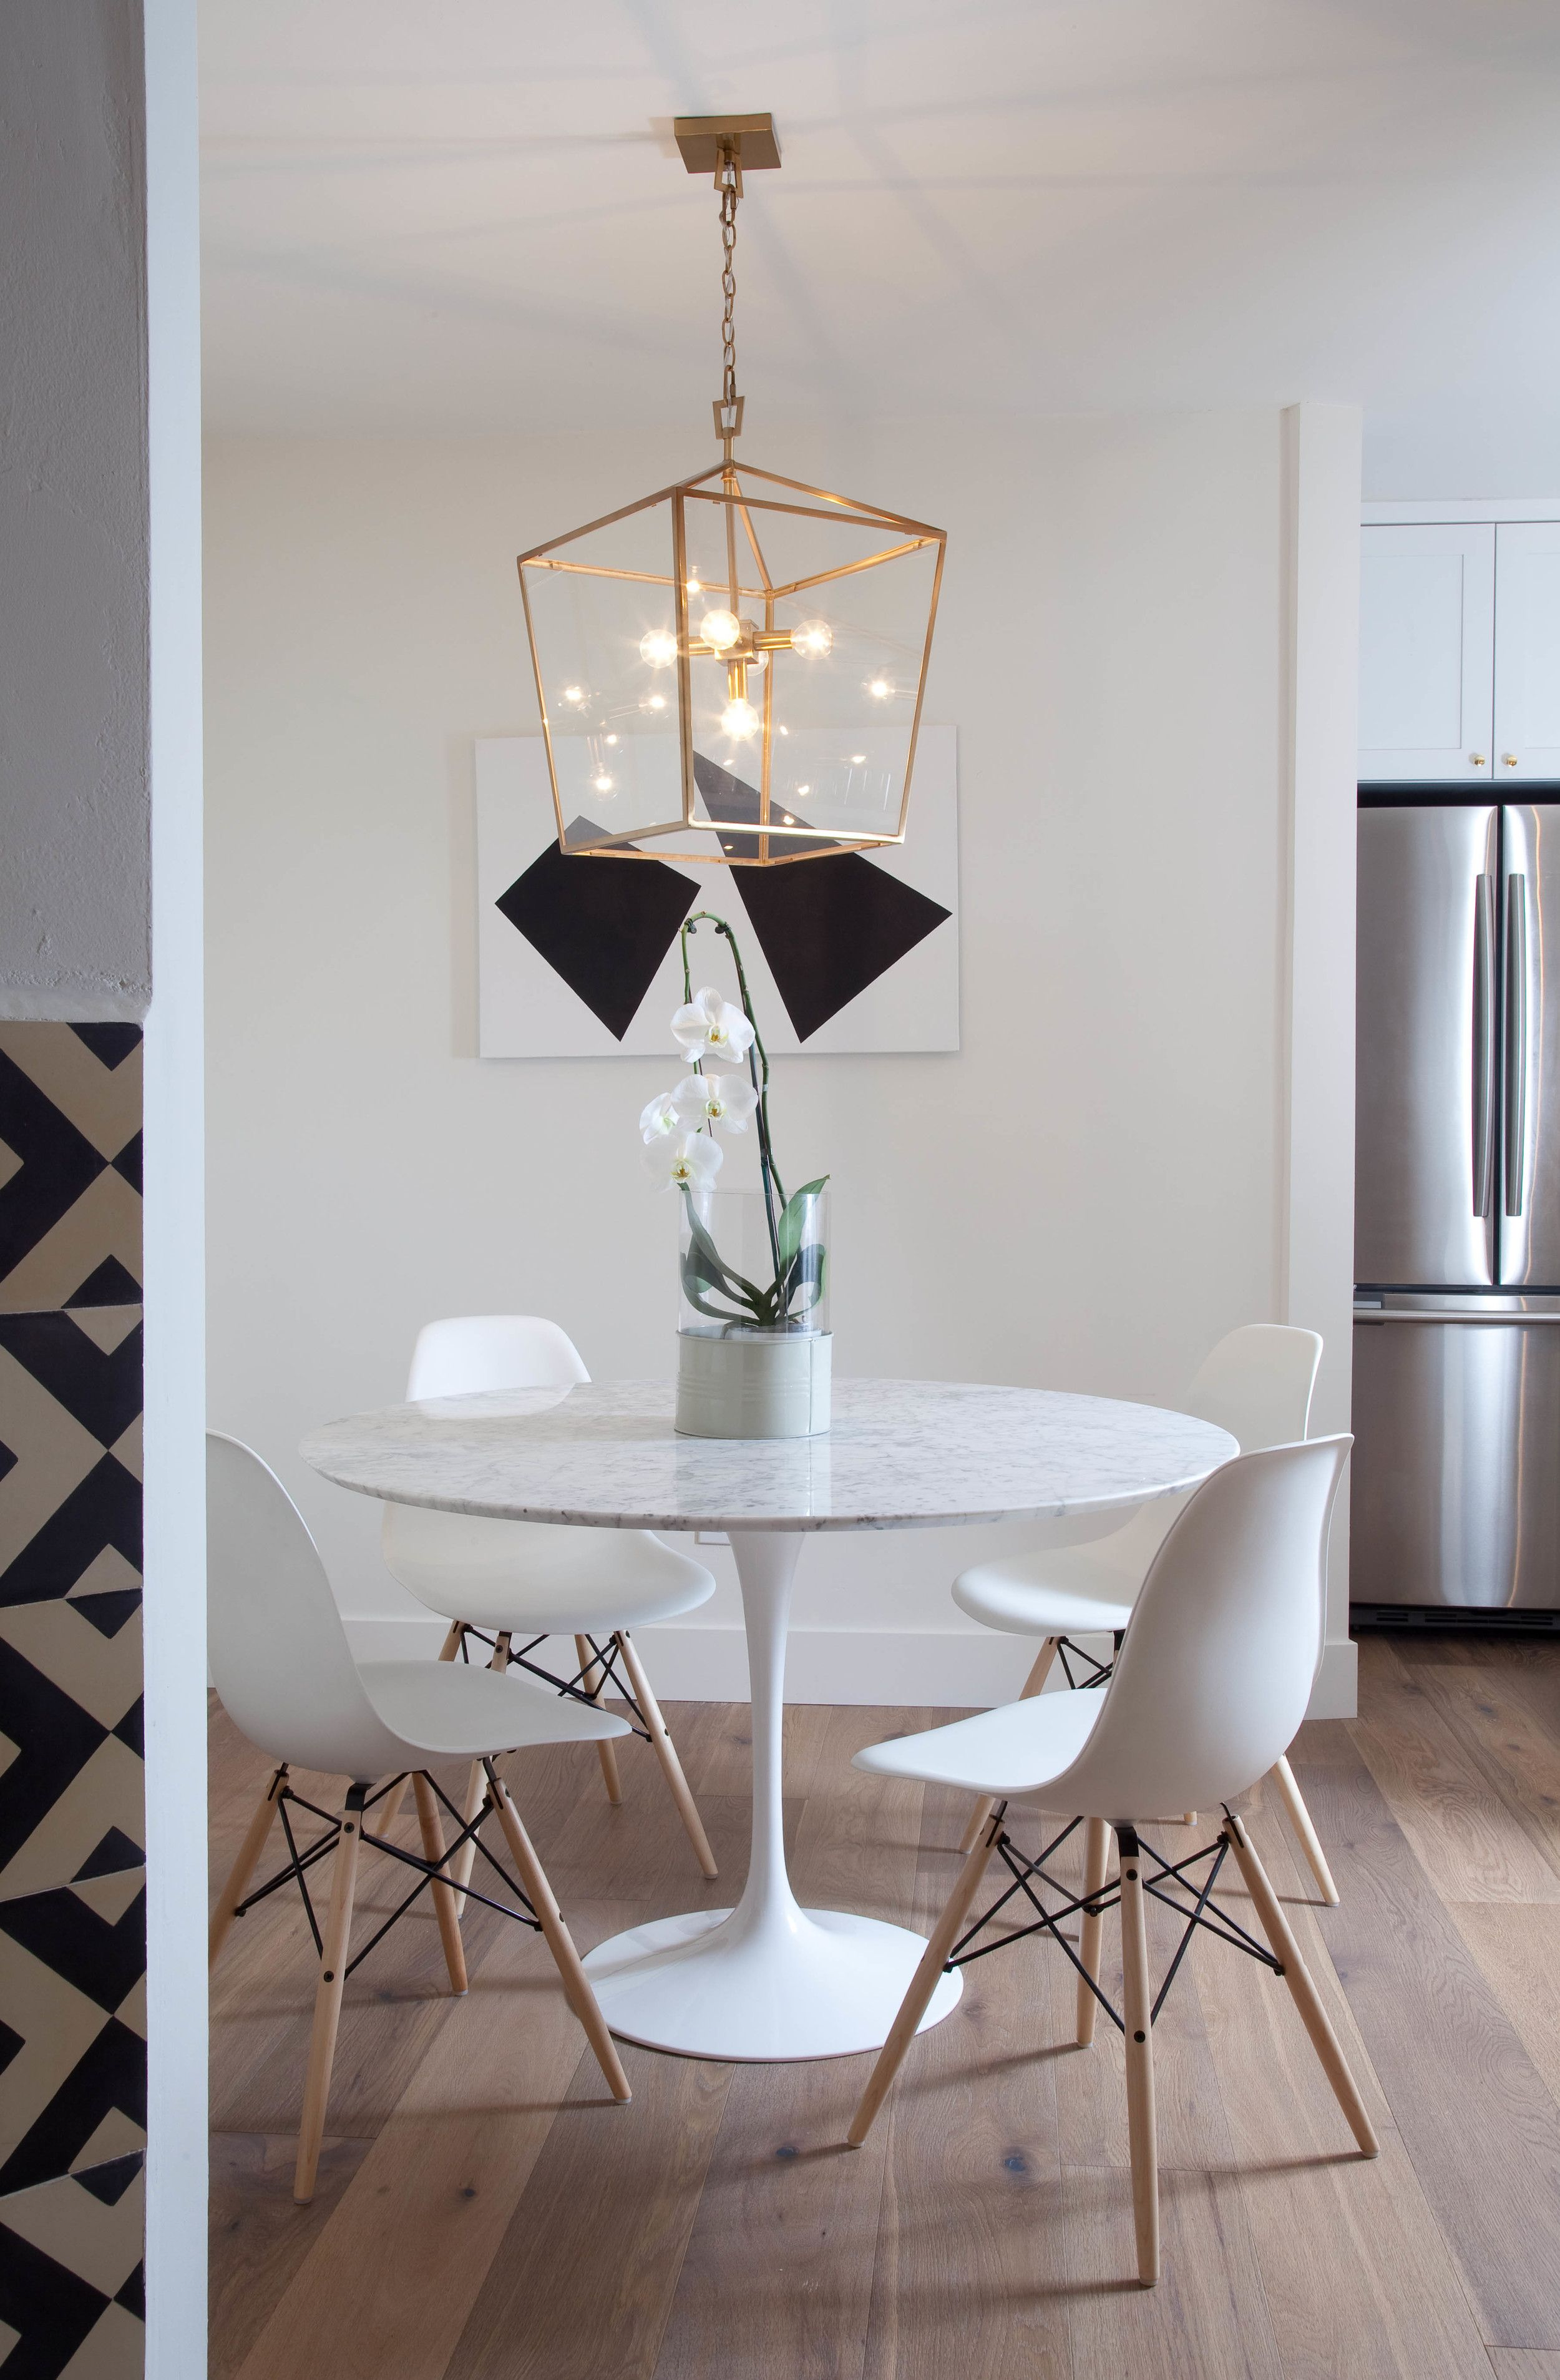 Dreamy White Marble Round Table and Chairs with